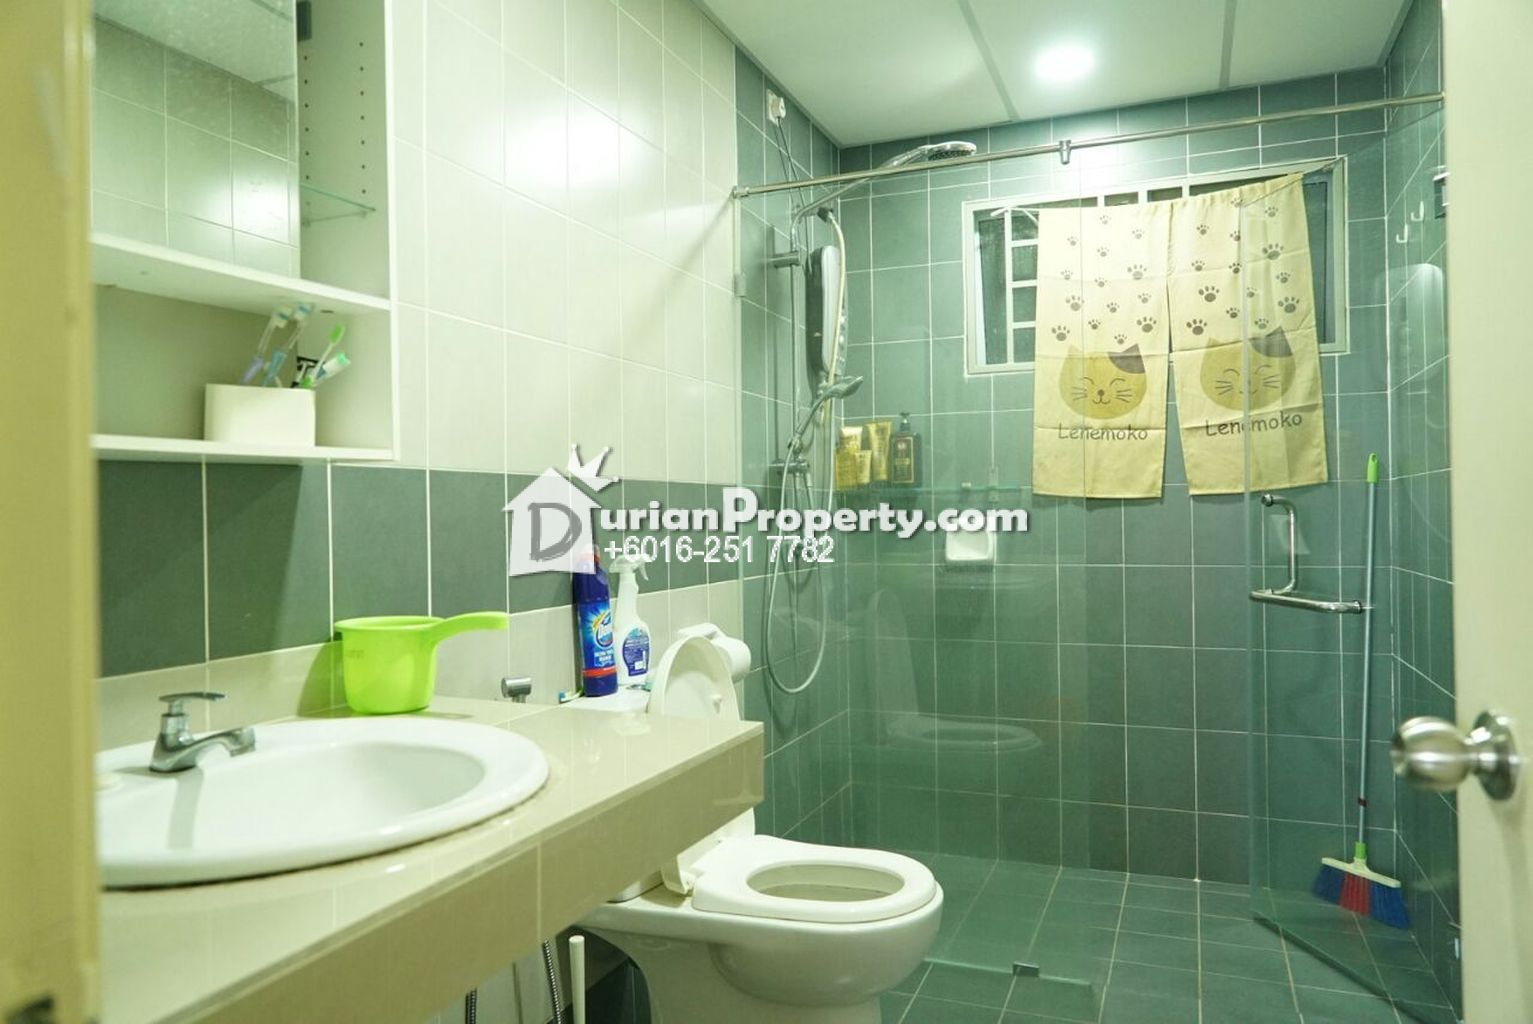 Condo for rent at koi kinrara bandar puchong jaya for for Koi kinrara swimming pool